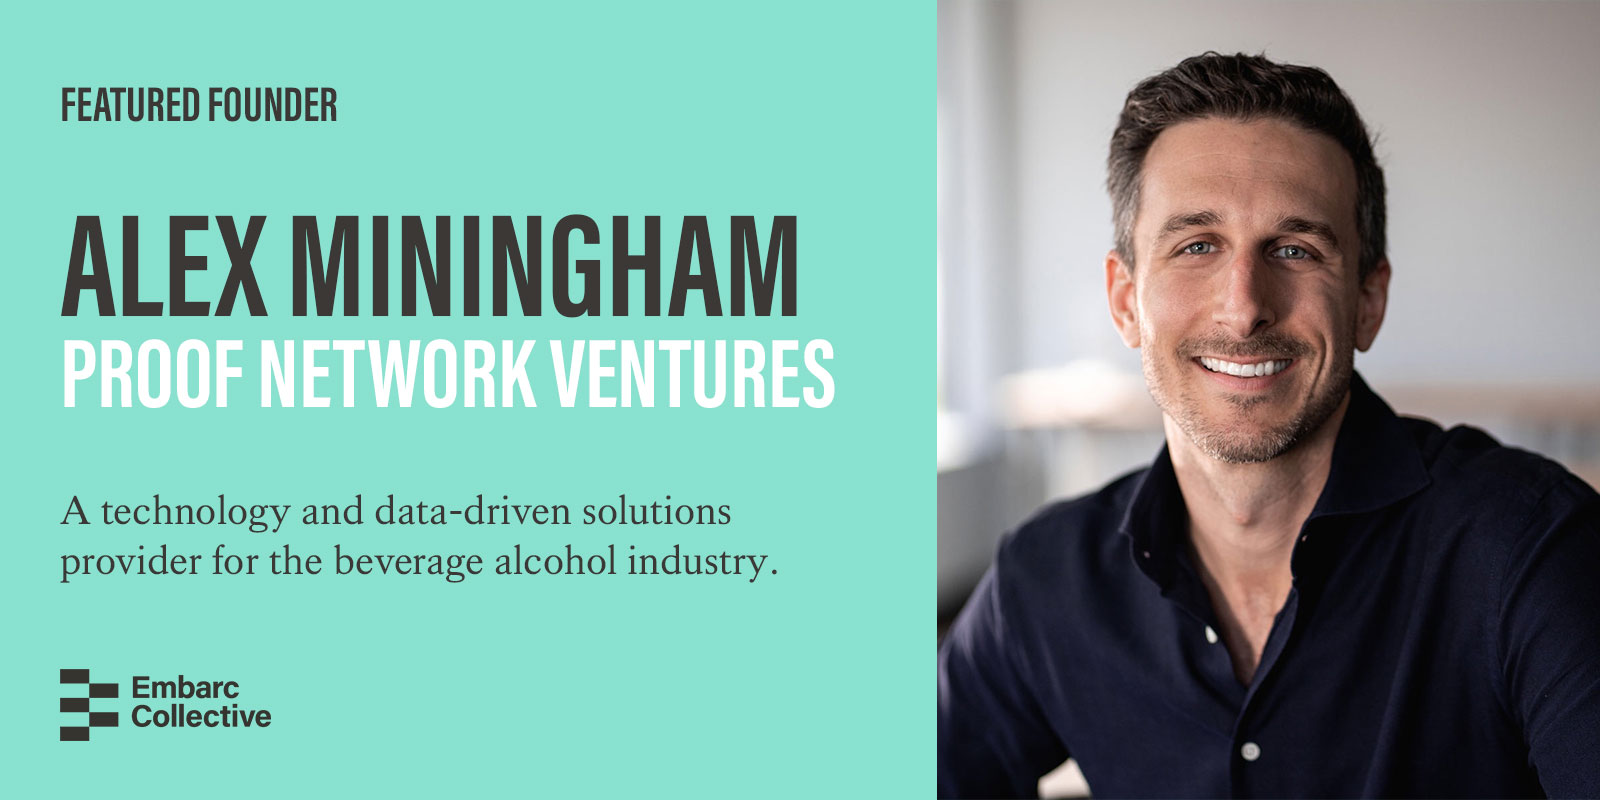 ff6730a2700d39 Featured Founder  Alex Miningham of Proof Network Ventures